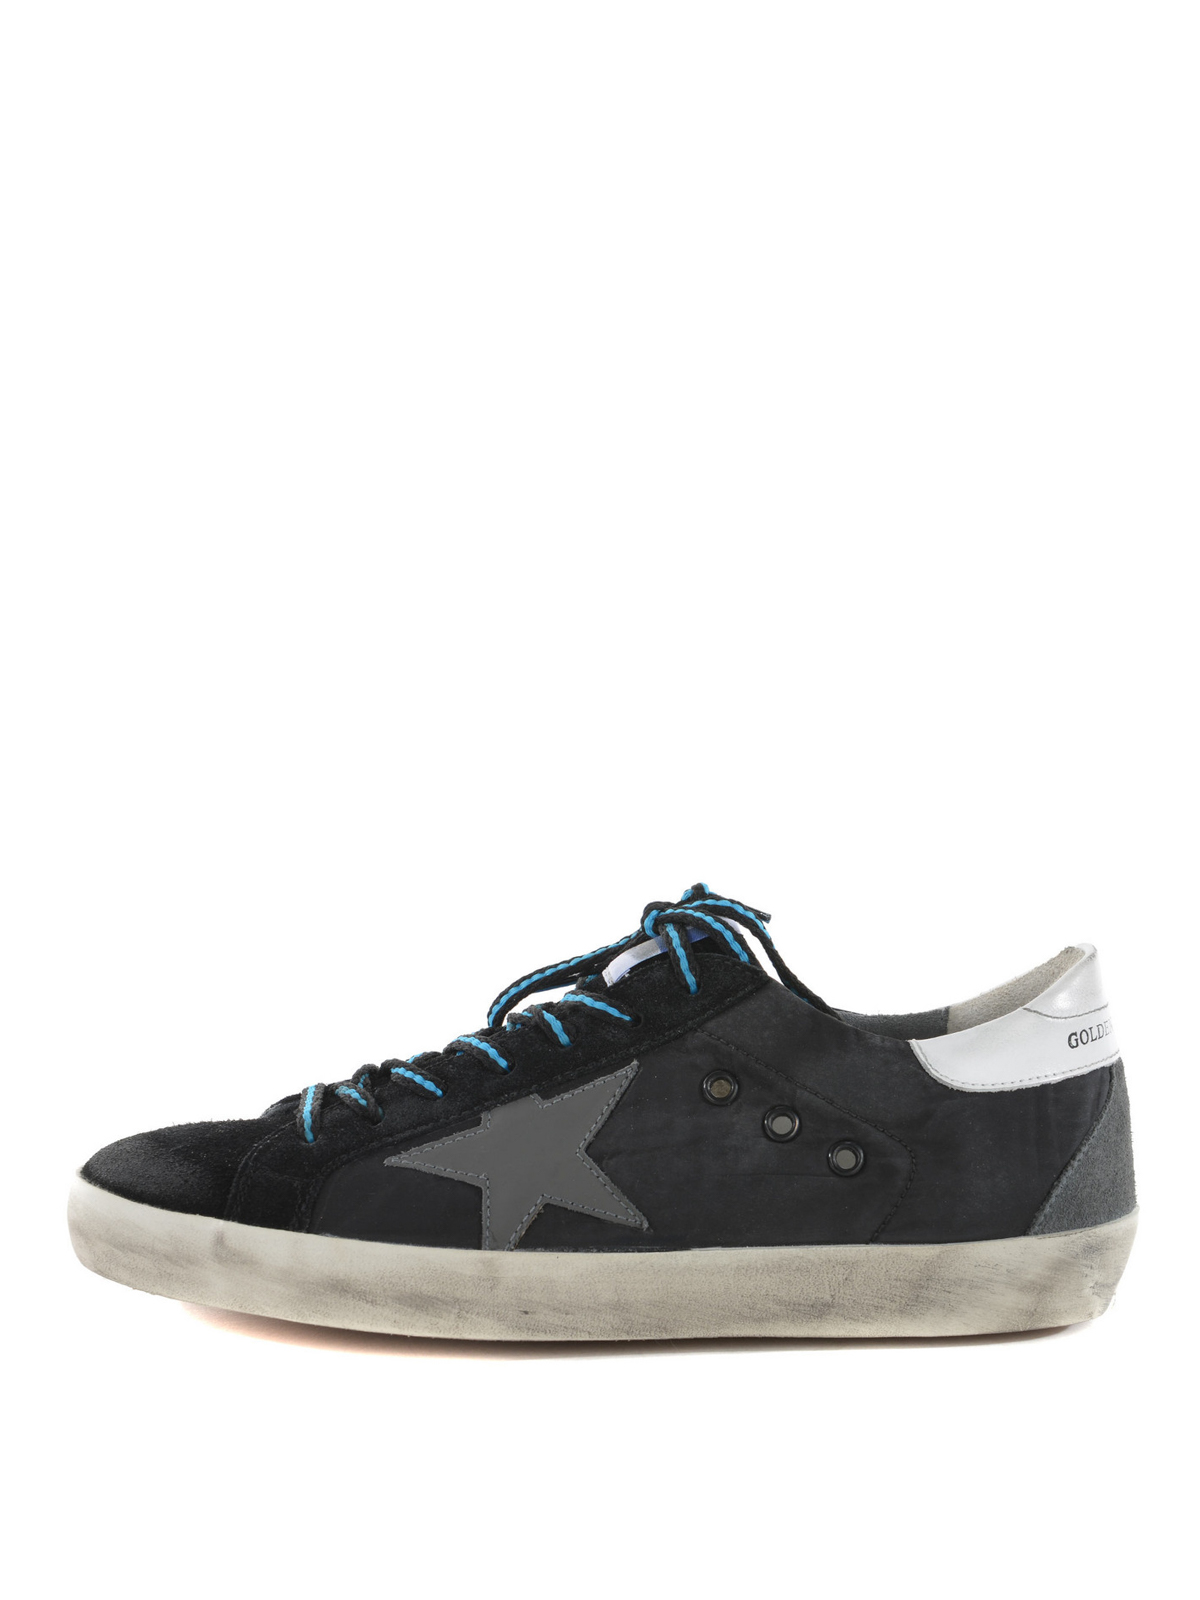 golden goose superstar suede and nylon sneakers trainers g30ms590b44. Black Bedroom Furniture Sets. Home Design Ideas